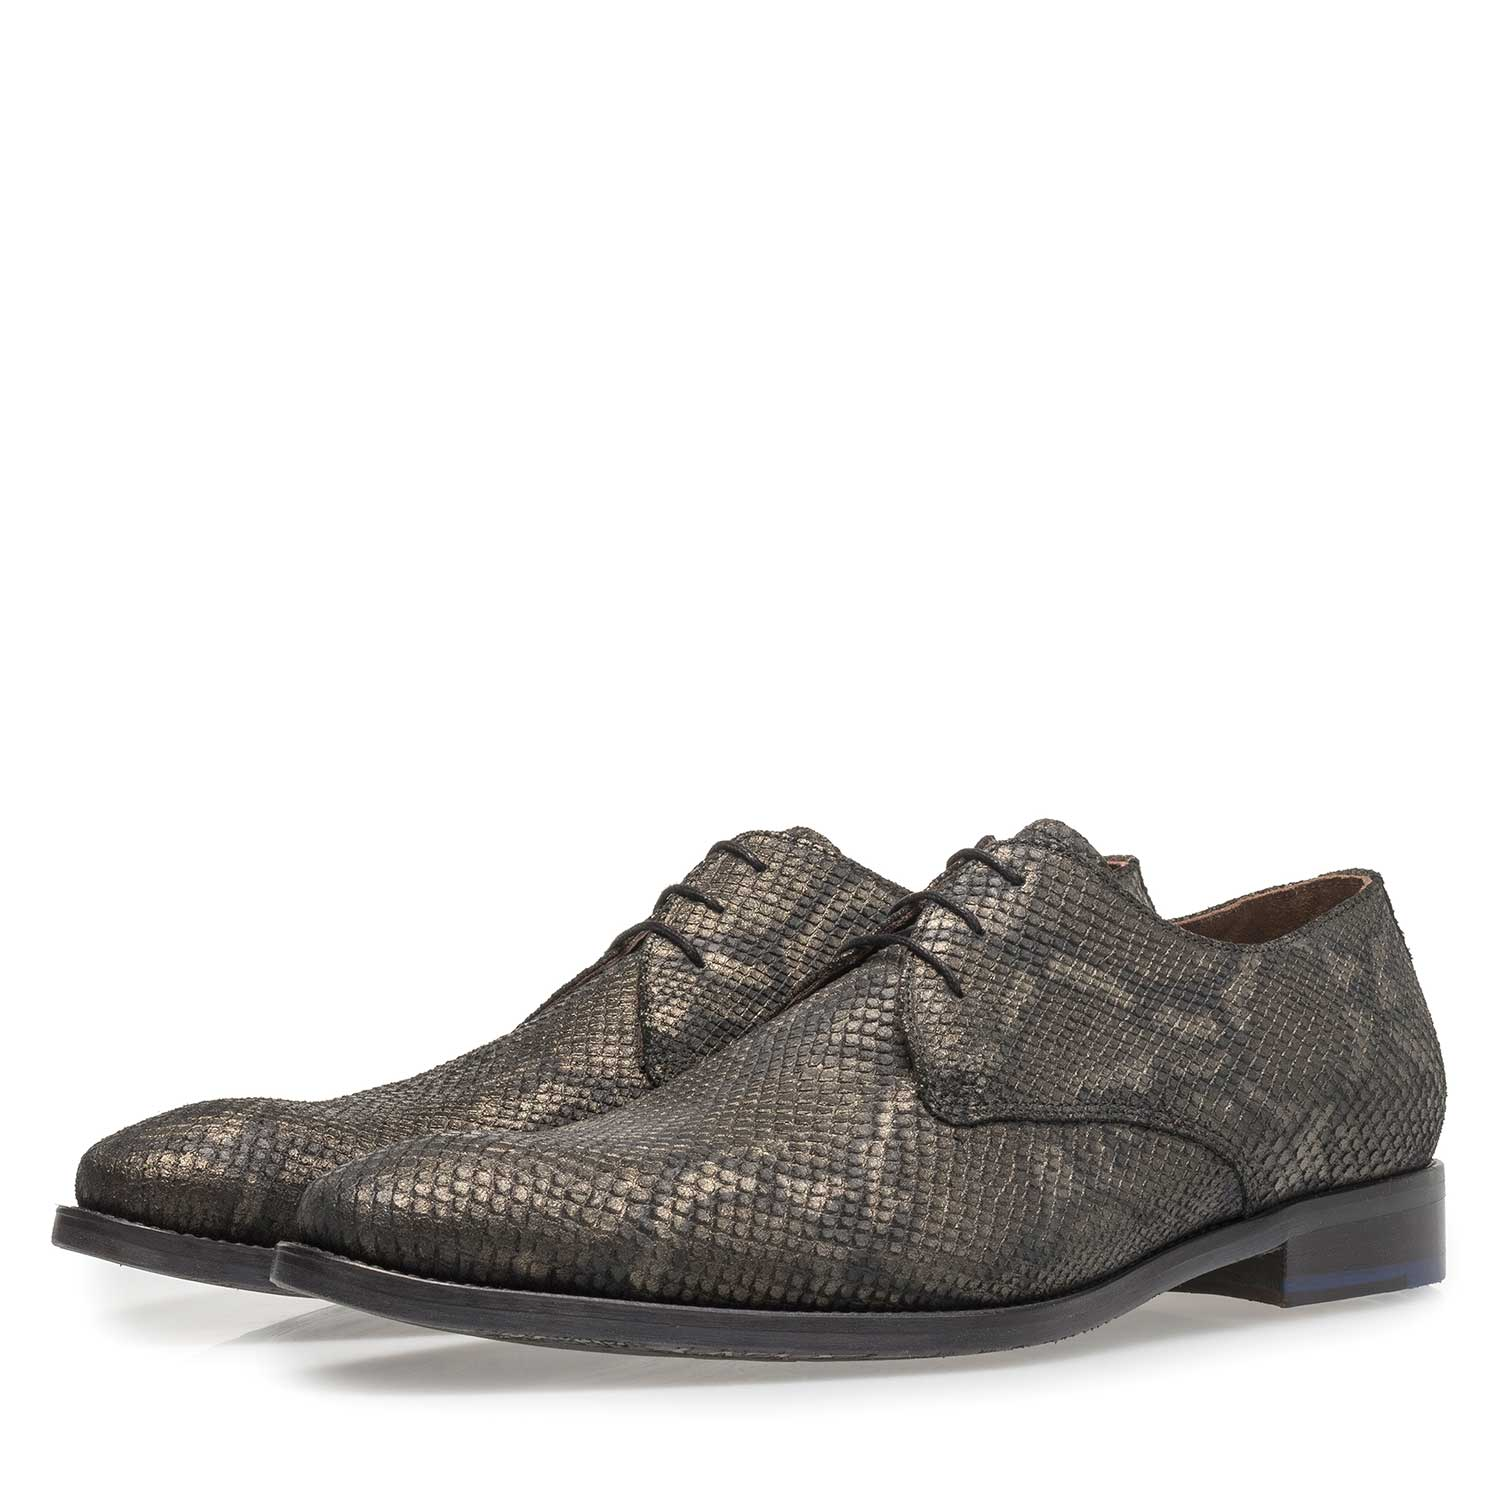 18124/00 - Lace shoe with olive green snake print